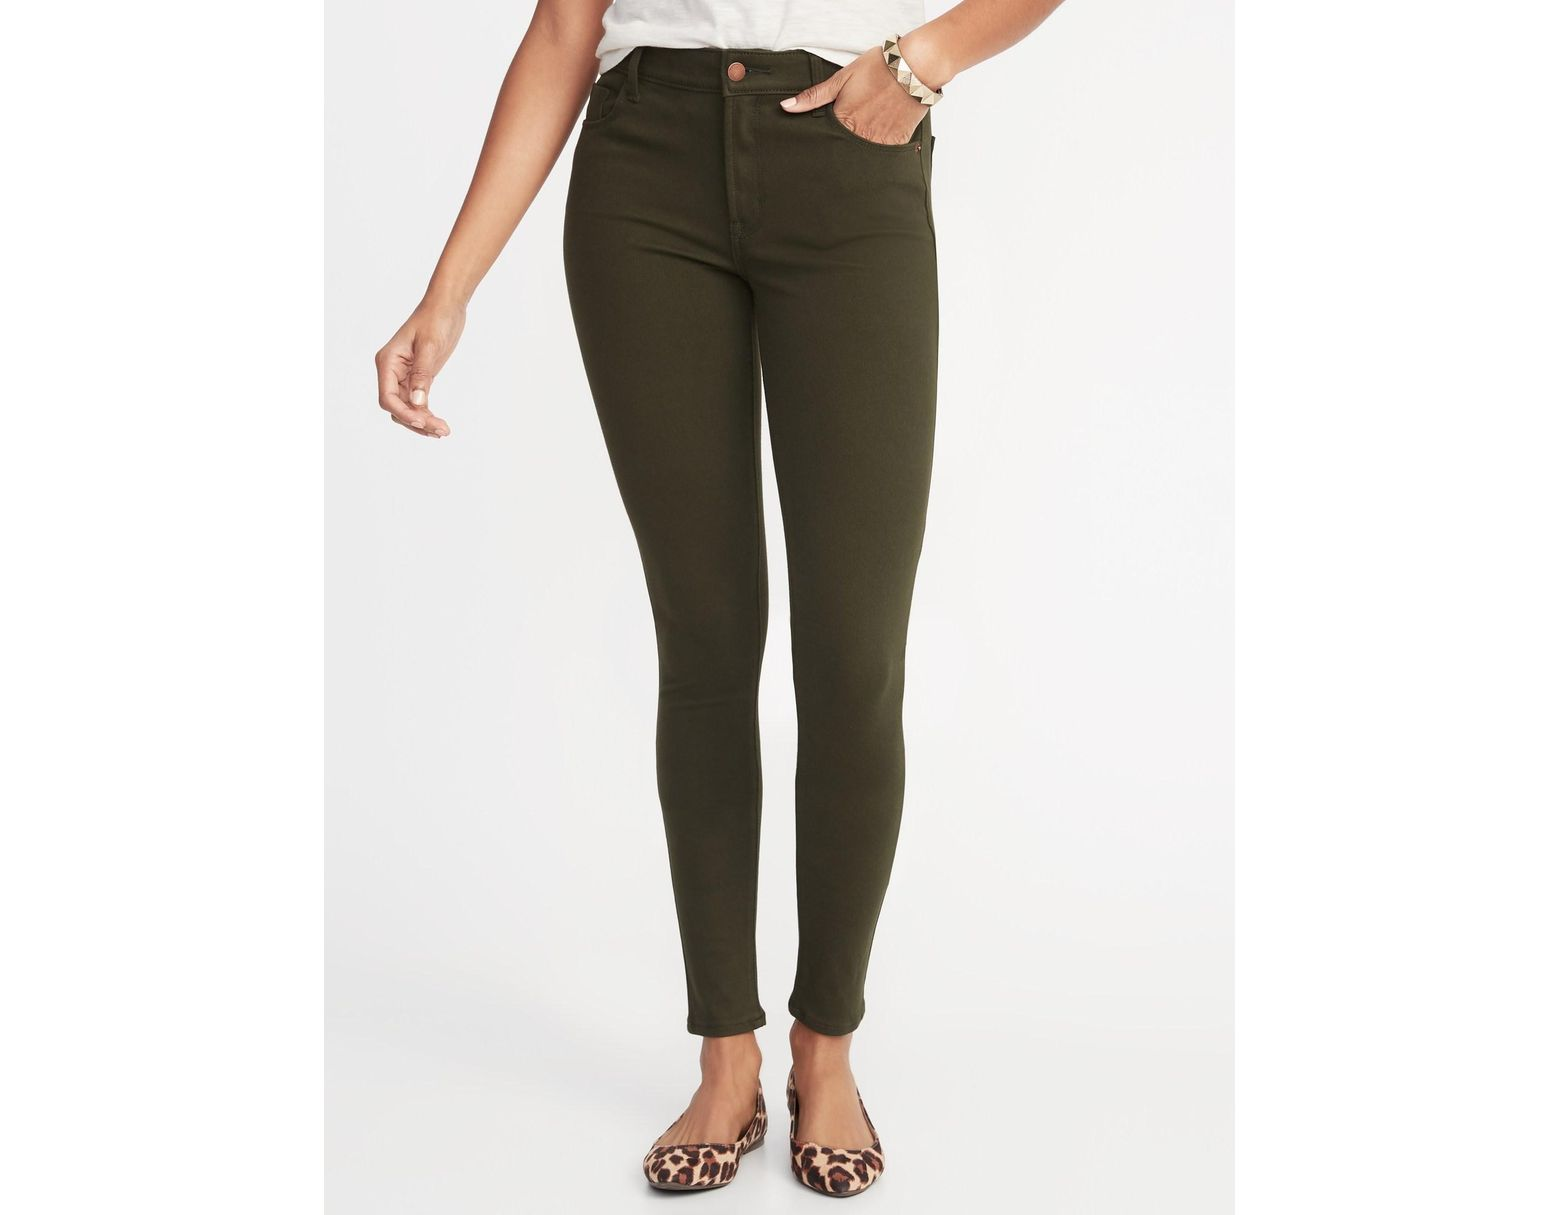 ae28a23843 Old Navy Mid-rise Rockstar 24/7 Pop-color Super Skinny Jeans in Green - Lyst